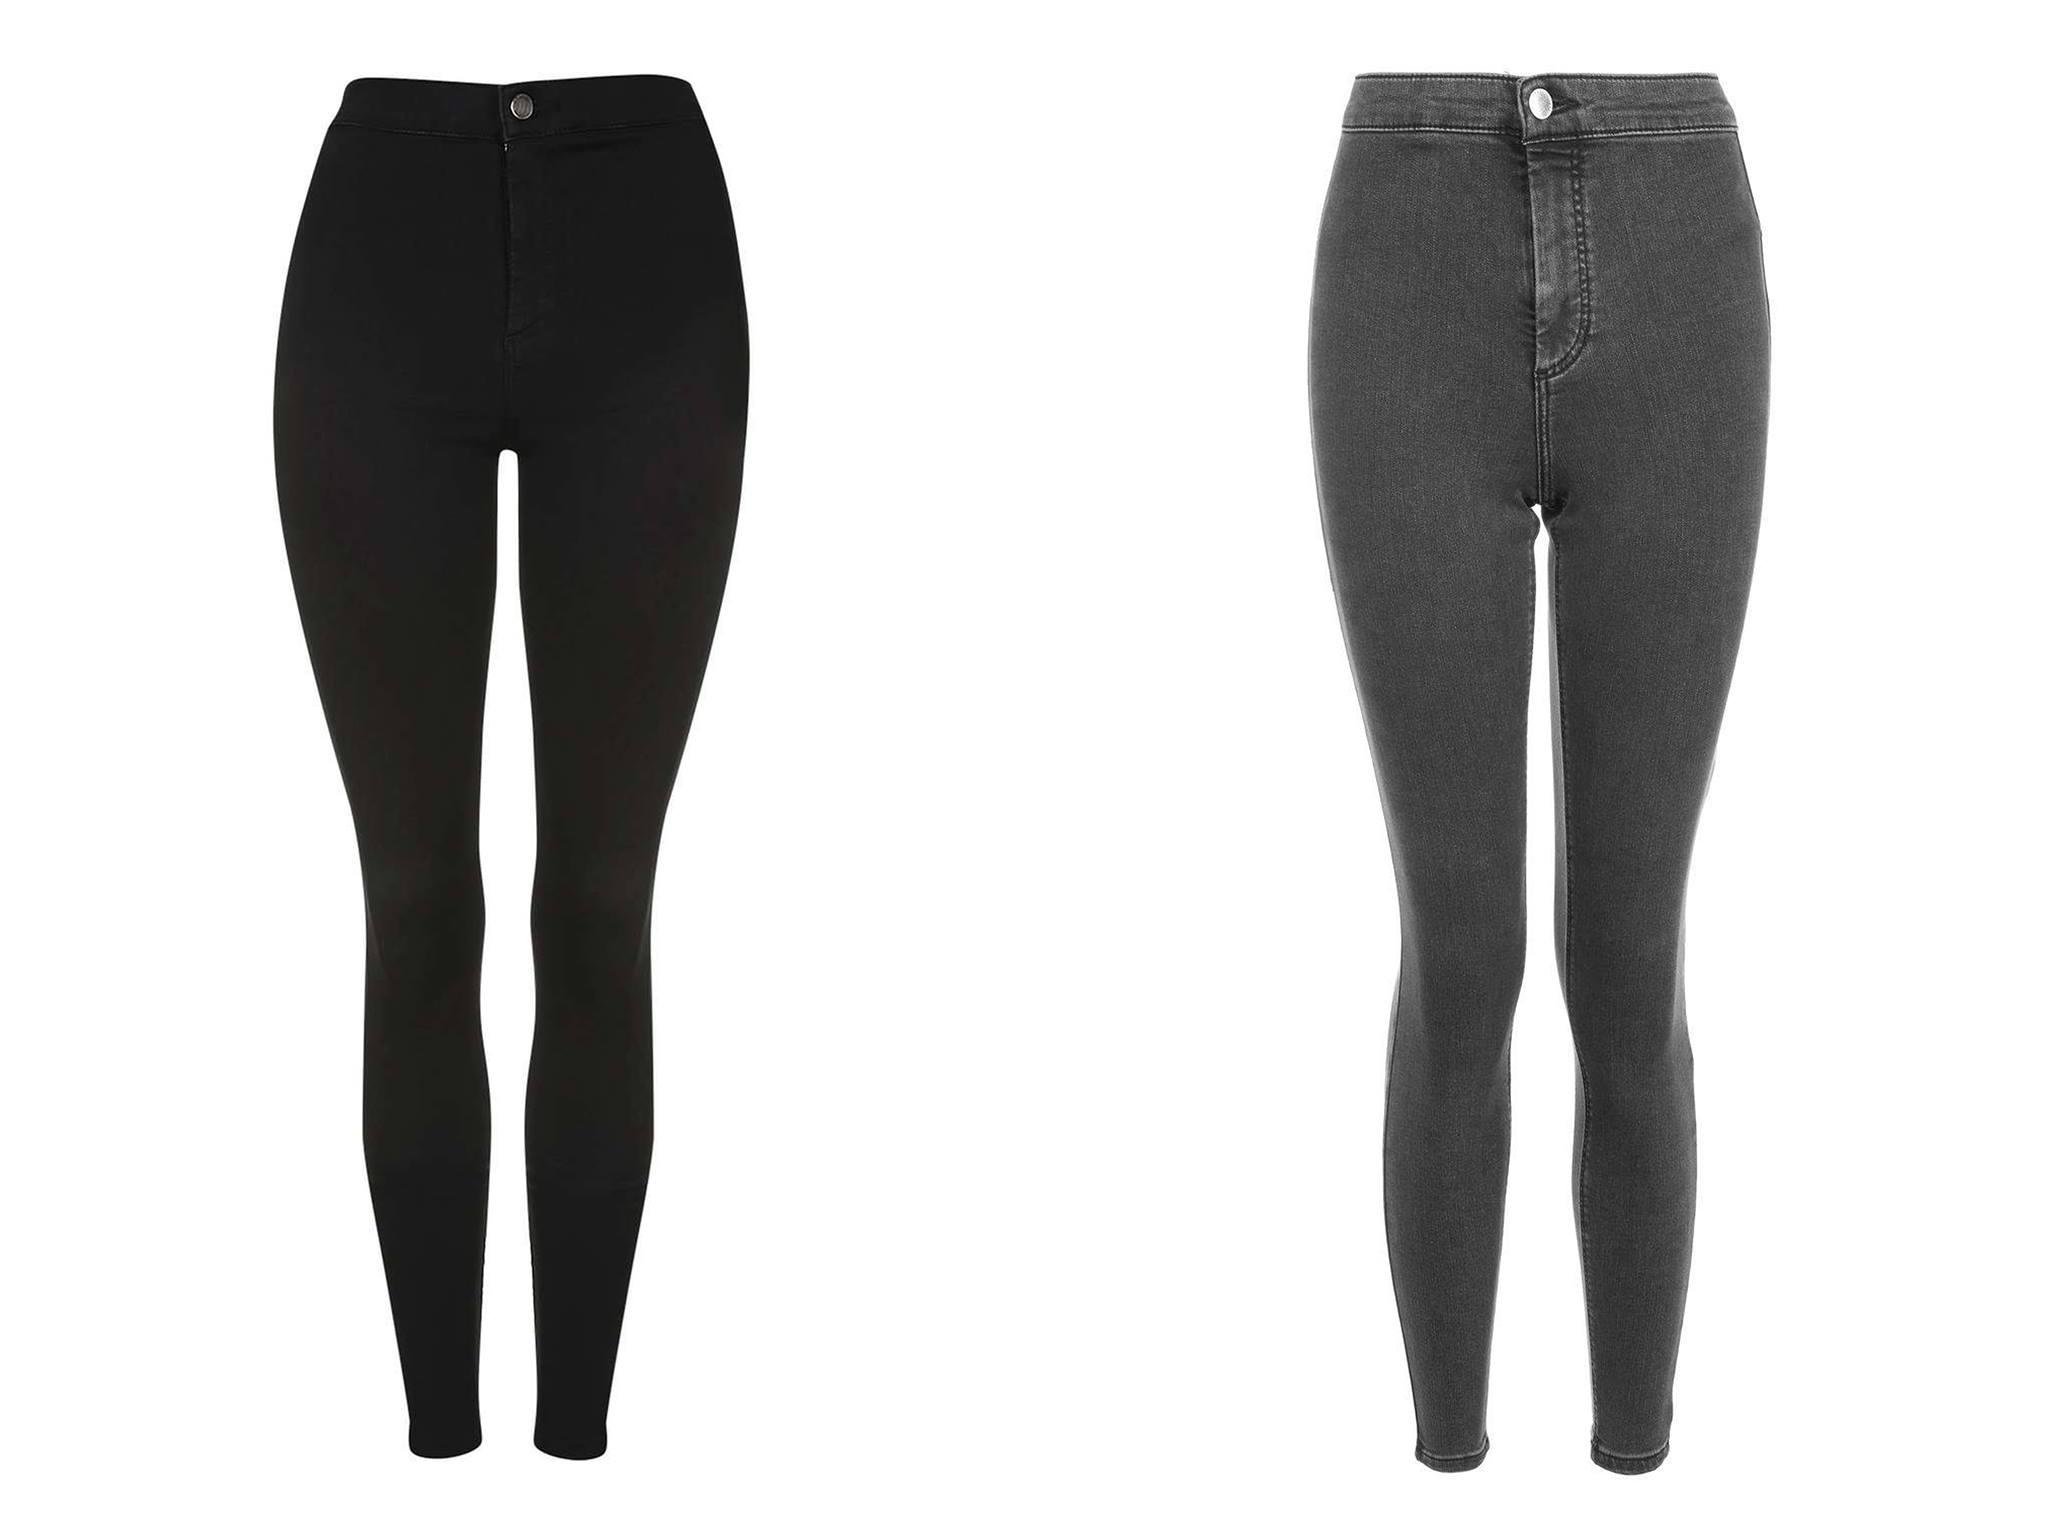 Topshop Joni jeans up close: the black (left) and washed black (right) are SO different